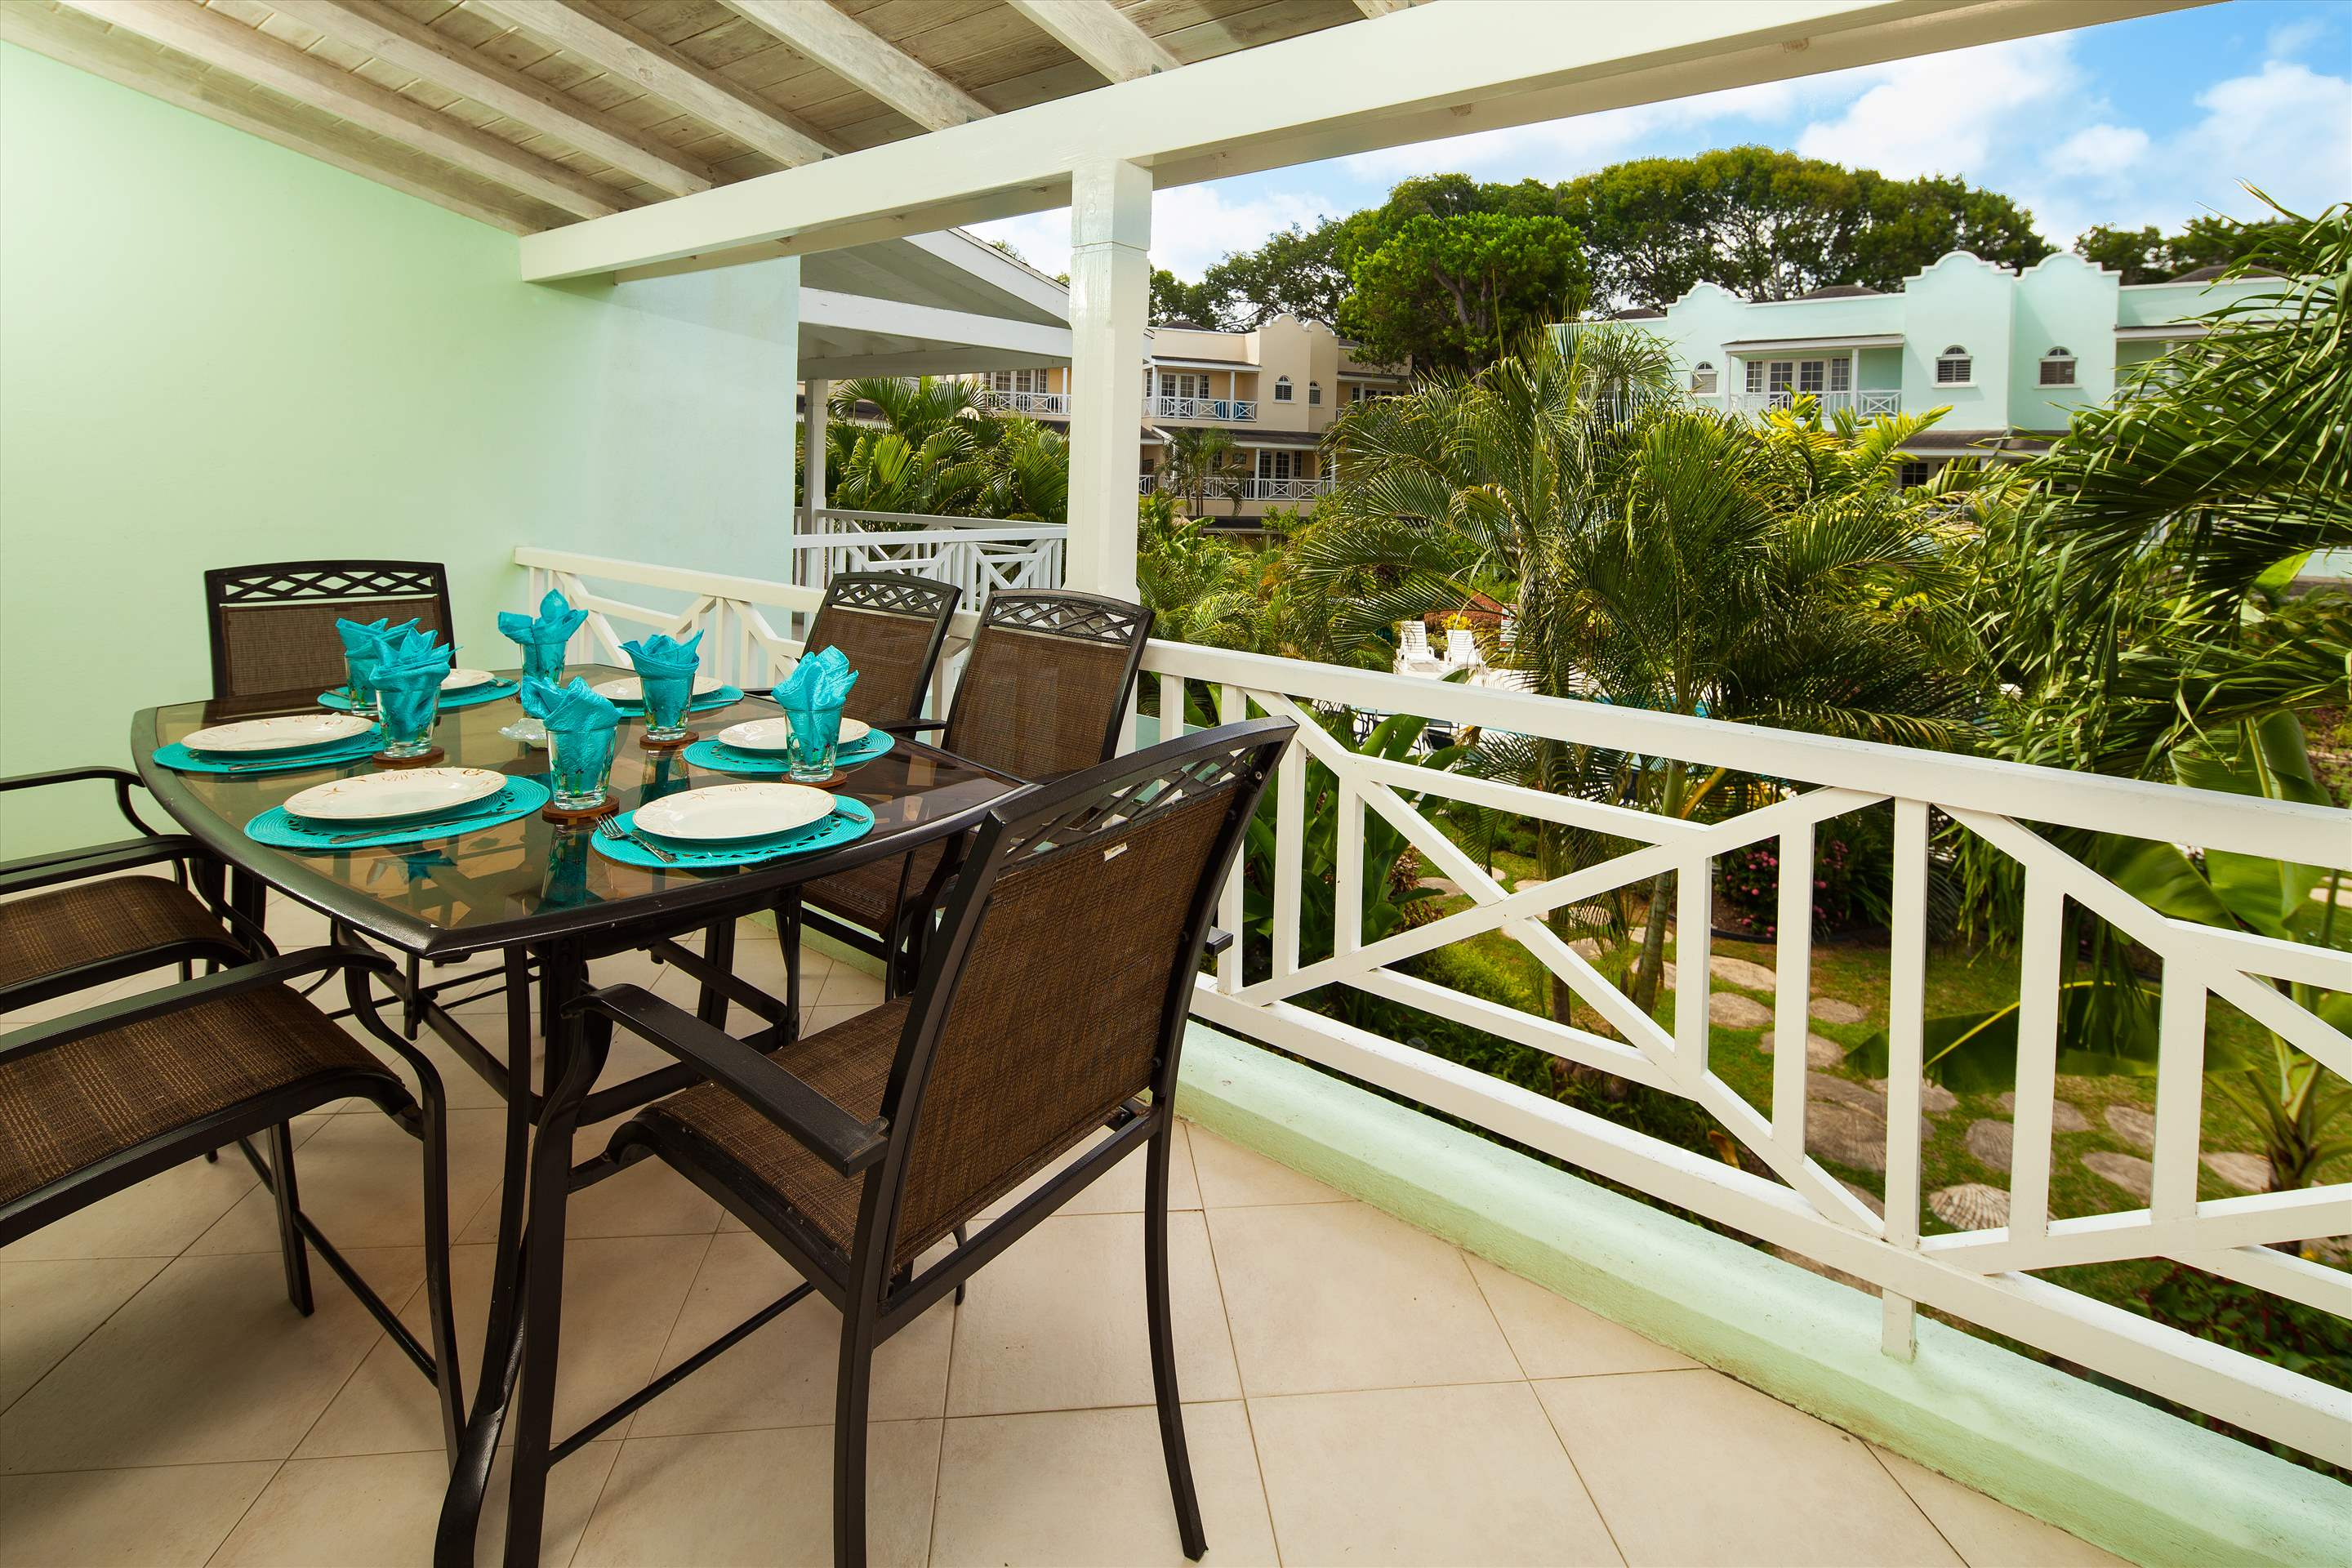 Margate Gardens 4, 3 bedroom, 3 bedroom apartment in St. Lawrence Gap & South Coast, Barbados Photo #3